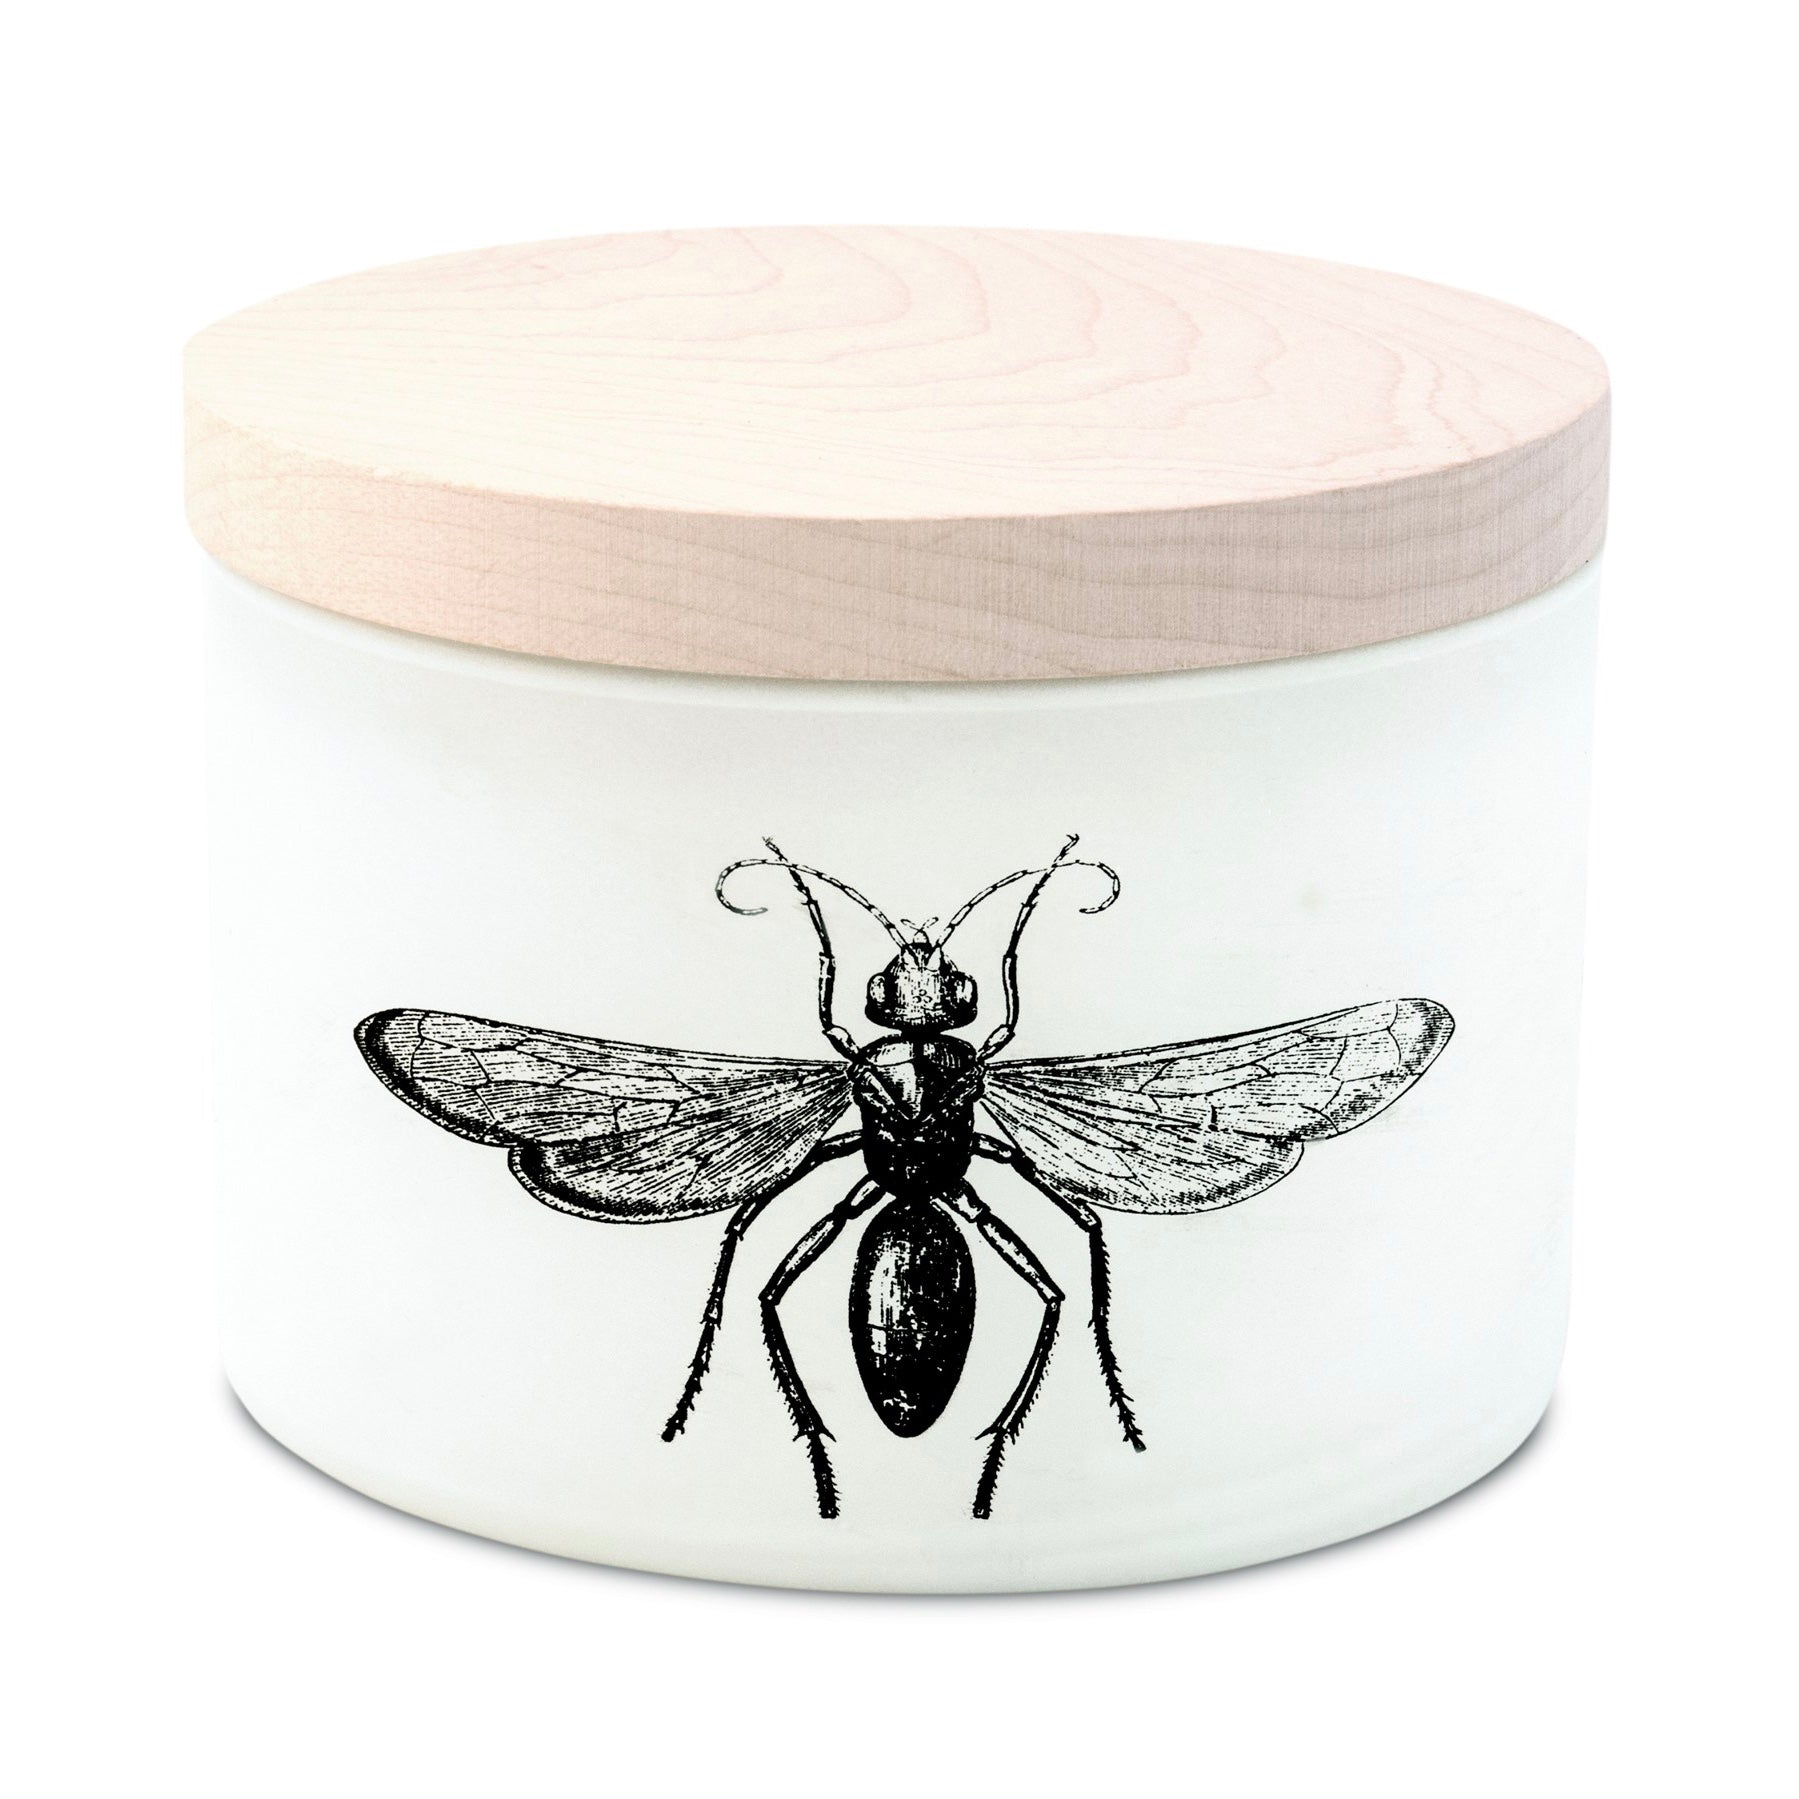 Skeem Design - 3 Wick Citronella Grapefruit Insect Candle